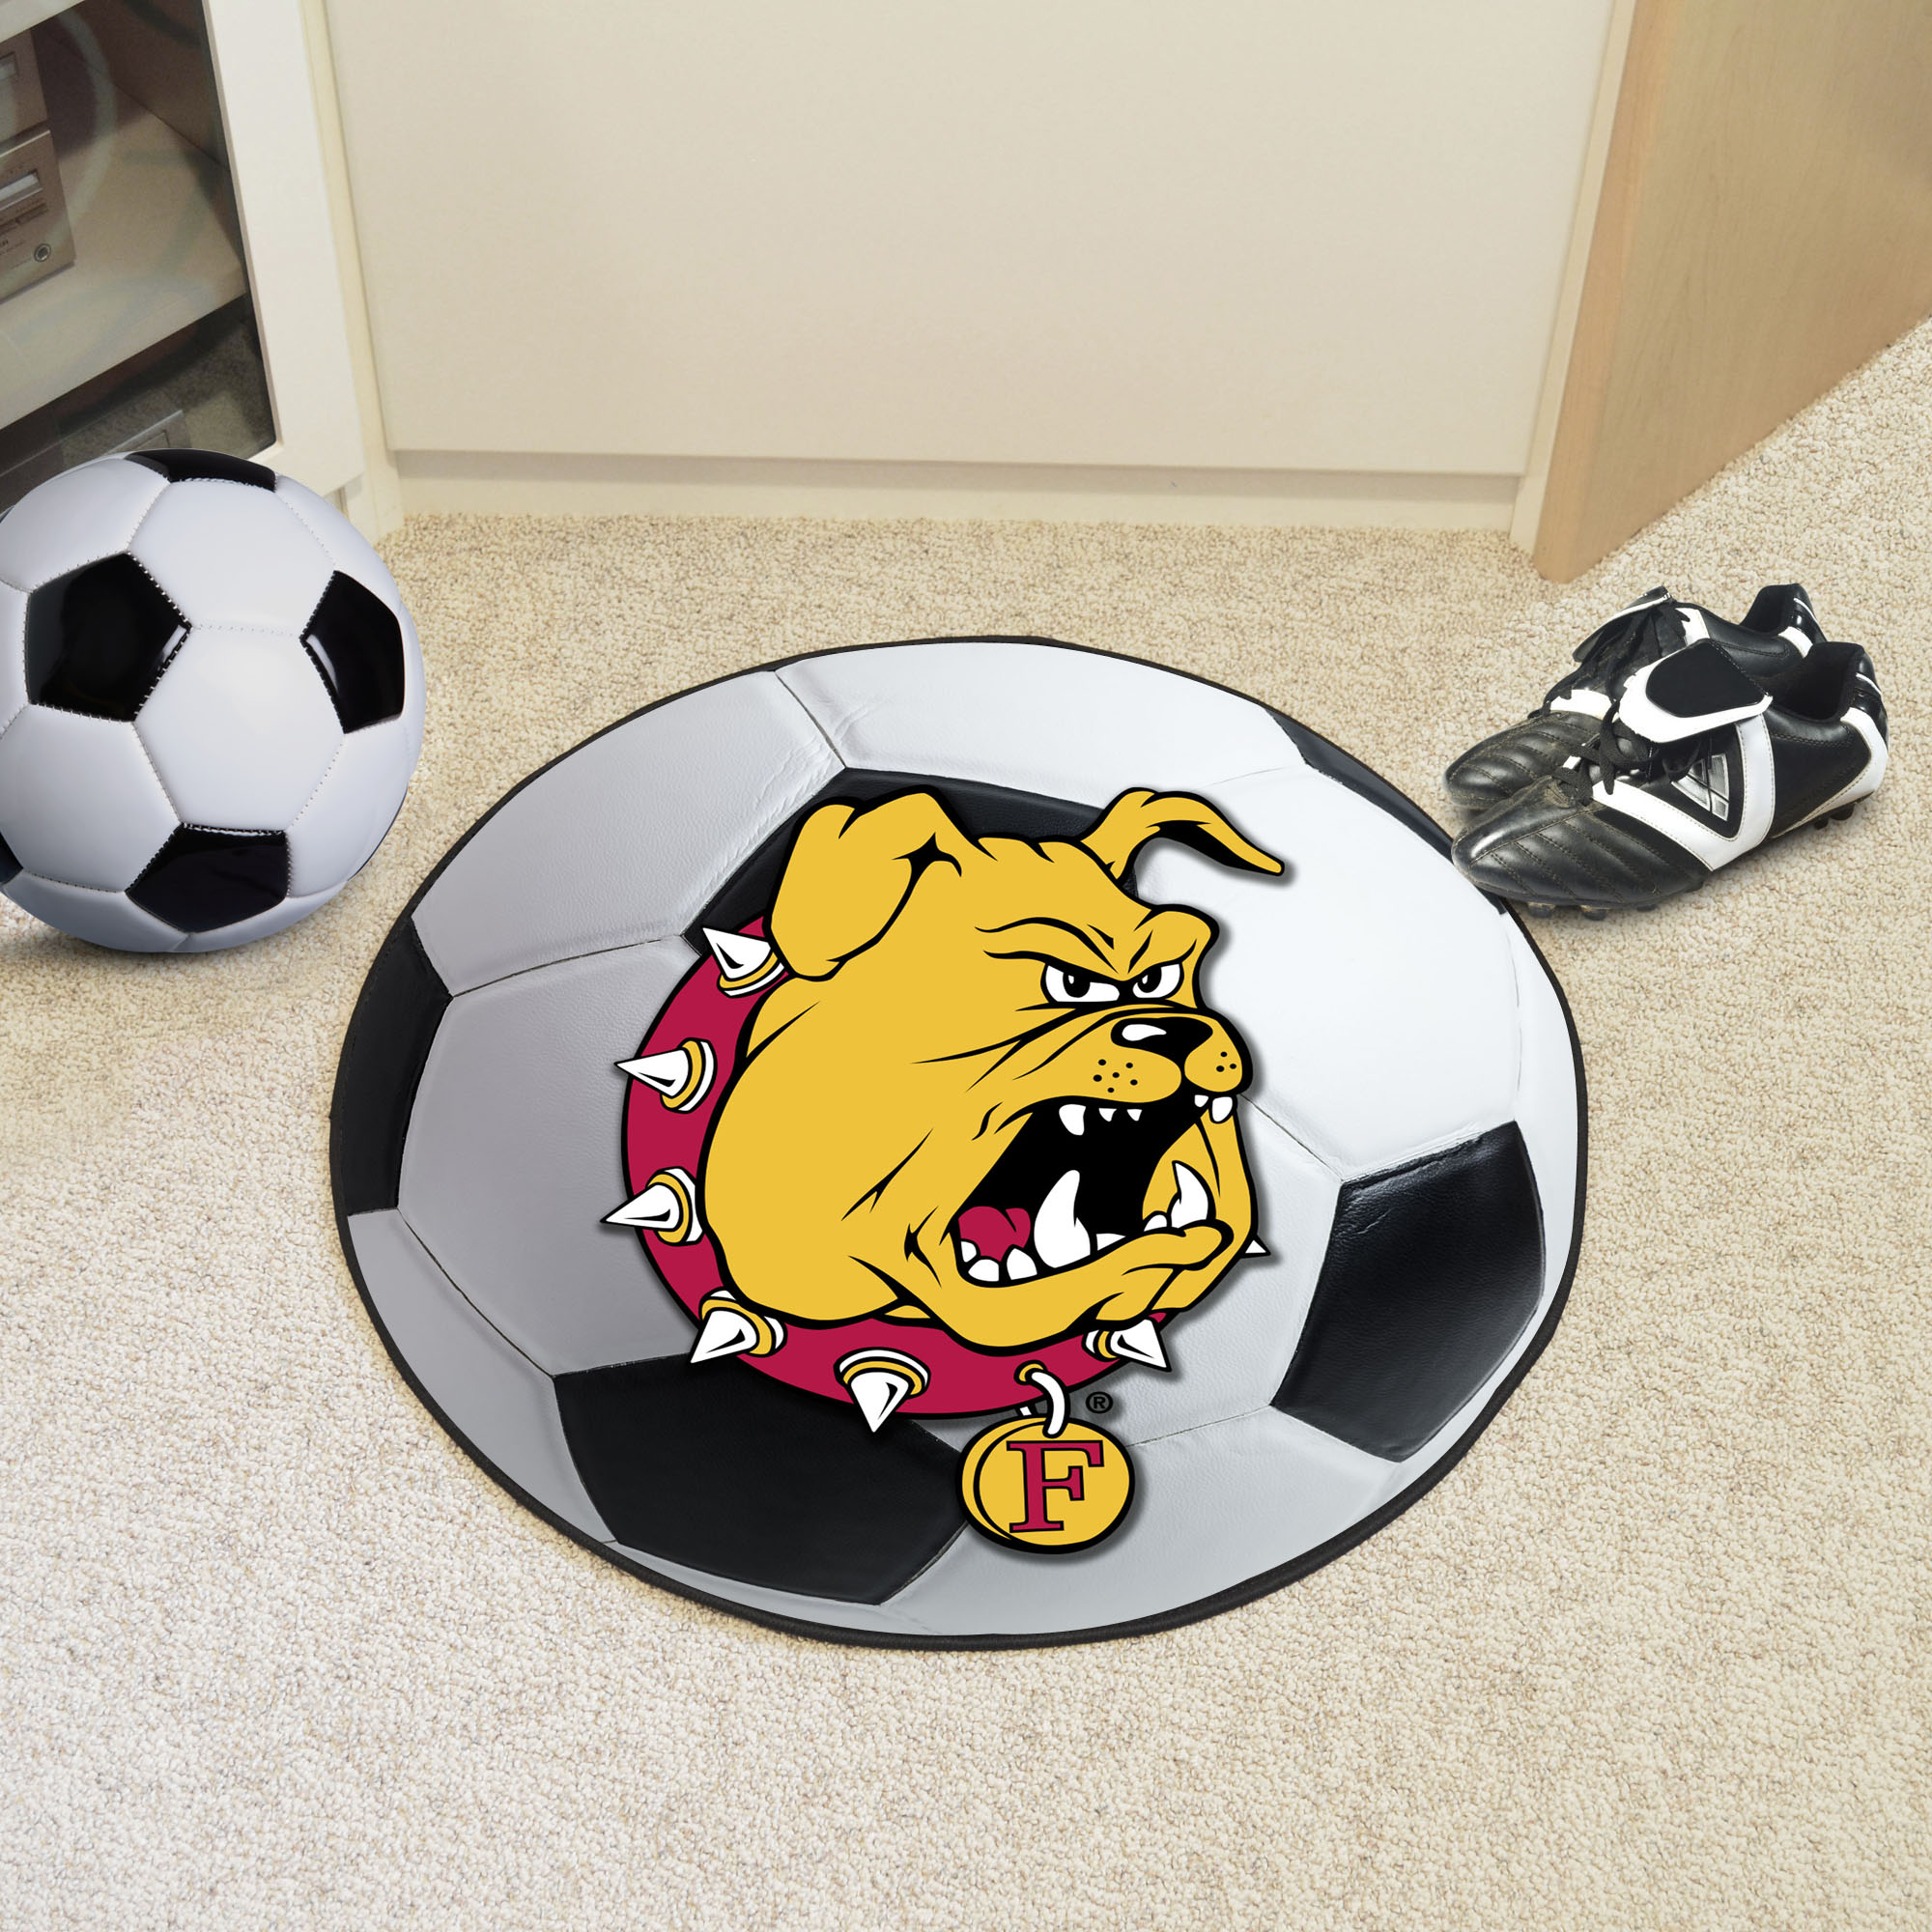 Ferris State University Ball Shaped Area Rugs (Ball Shaped Area Rugs: Soccer Ball)